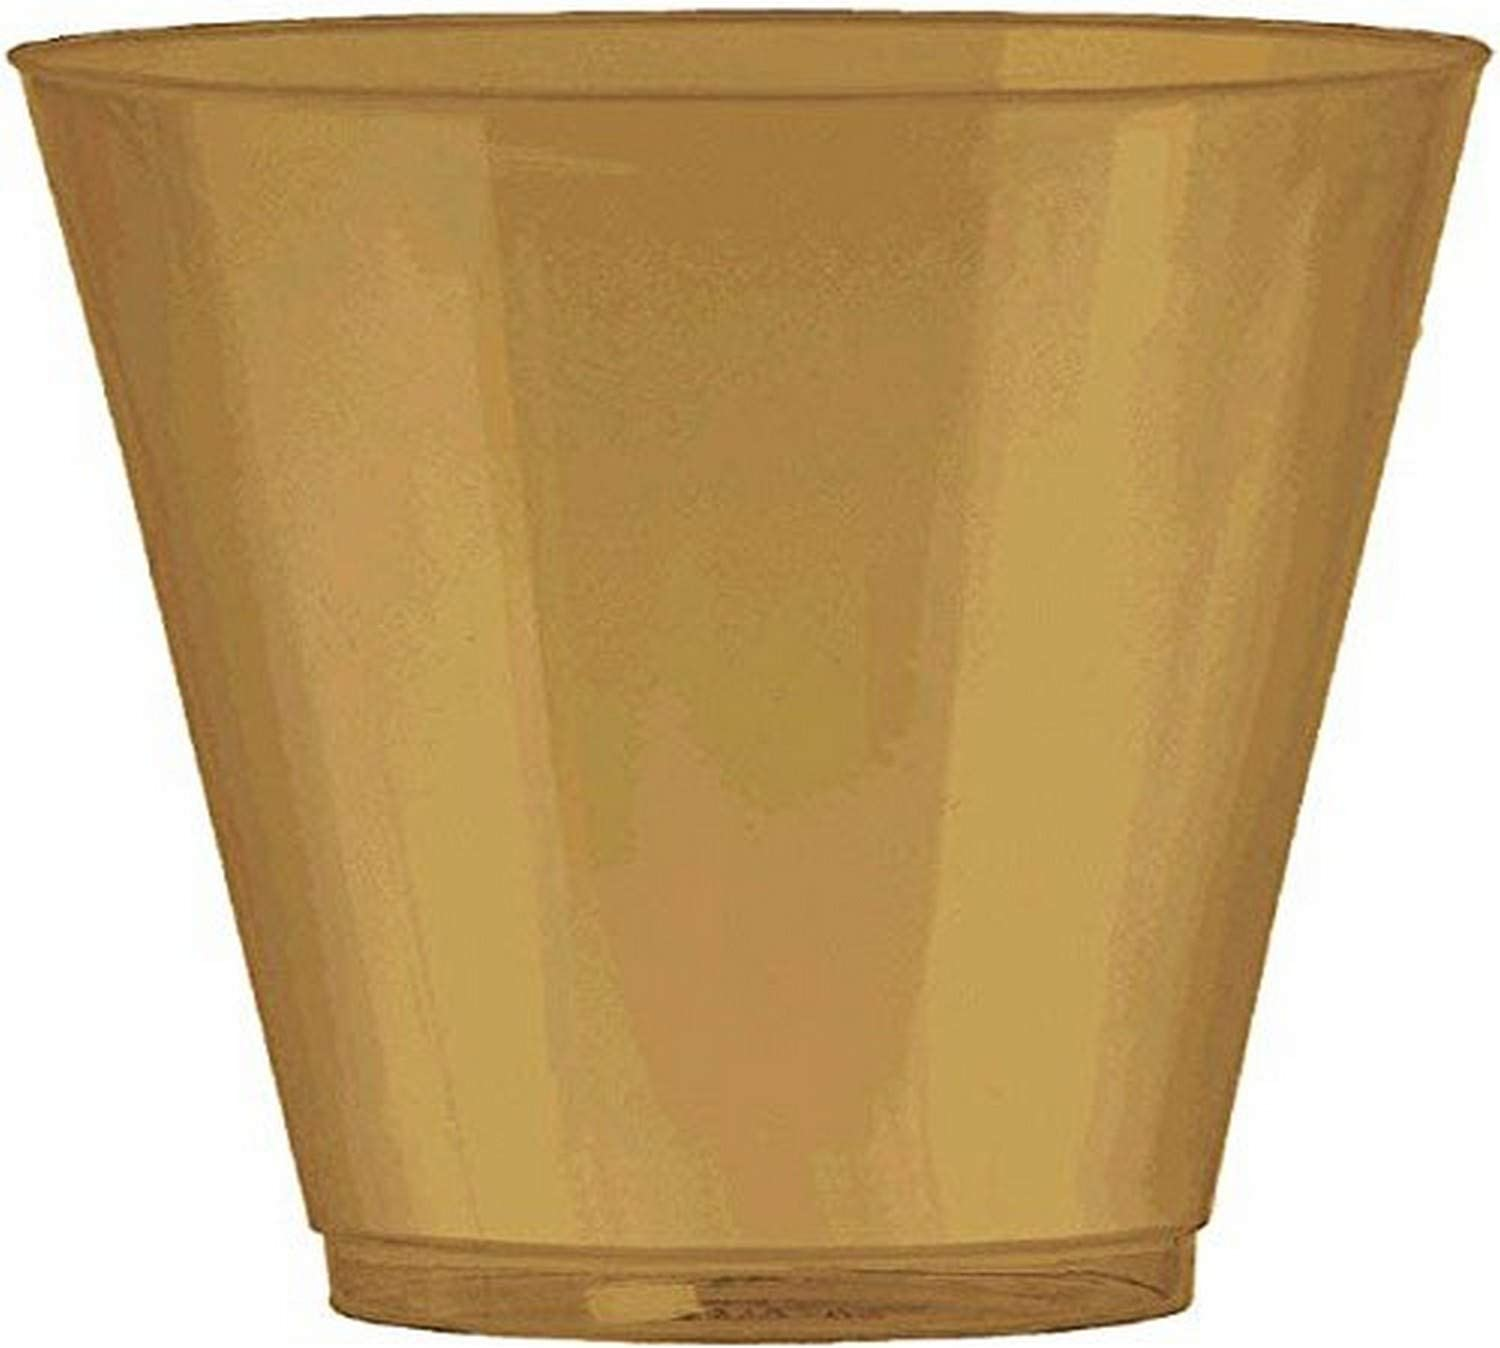 Amscan Red Plastic Cups 10 Ounce. Big Party Pack 72 Per Pack